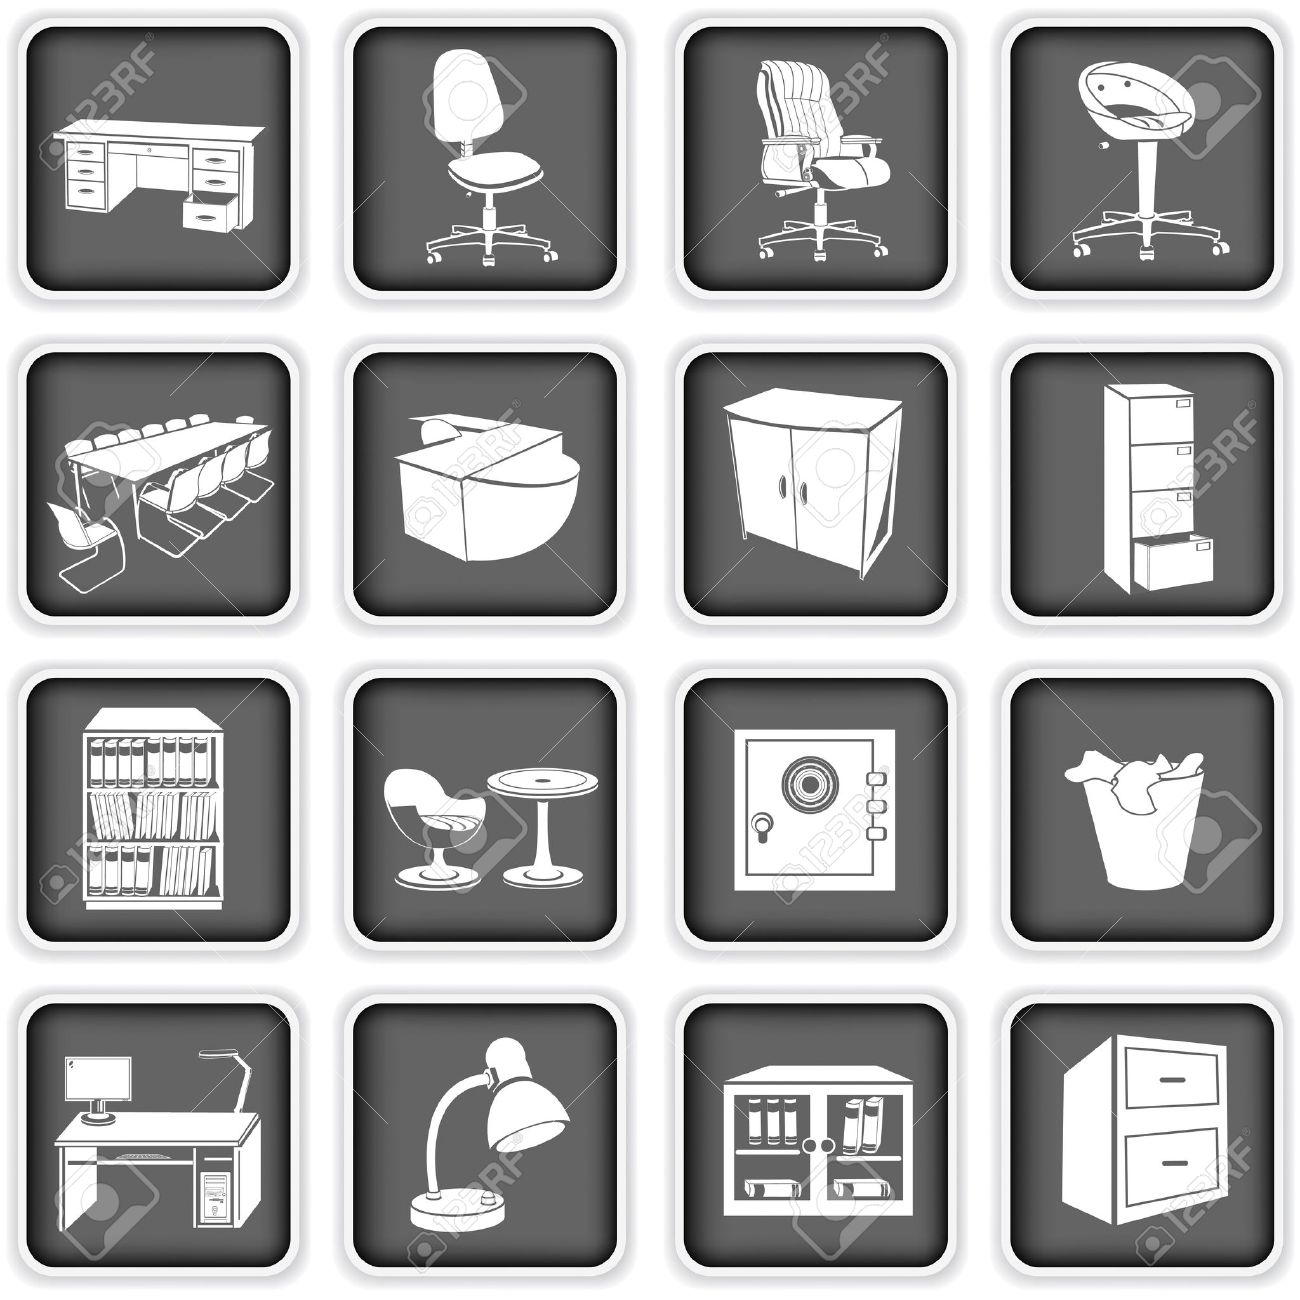 10201 Office Table Set Cliparts Stock Vector And Royalty Free